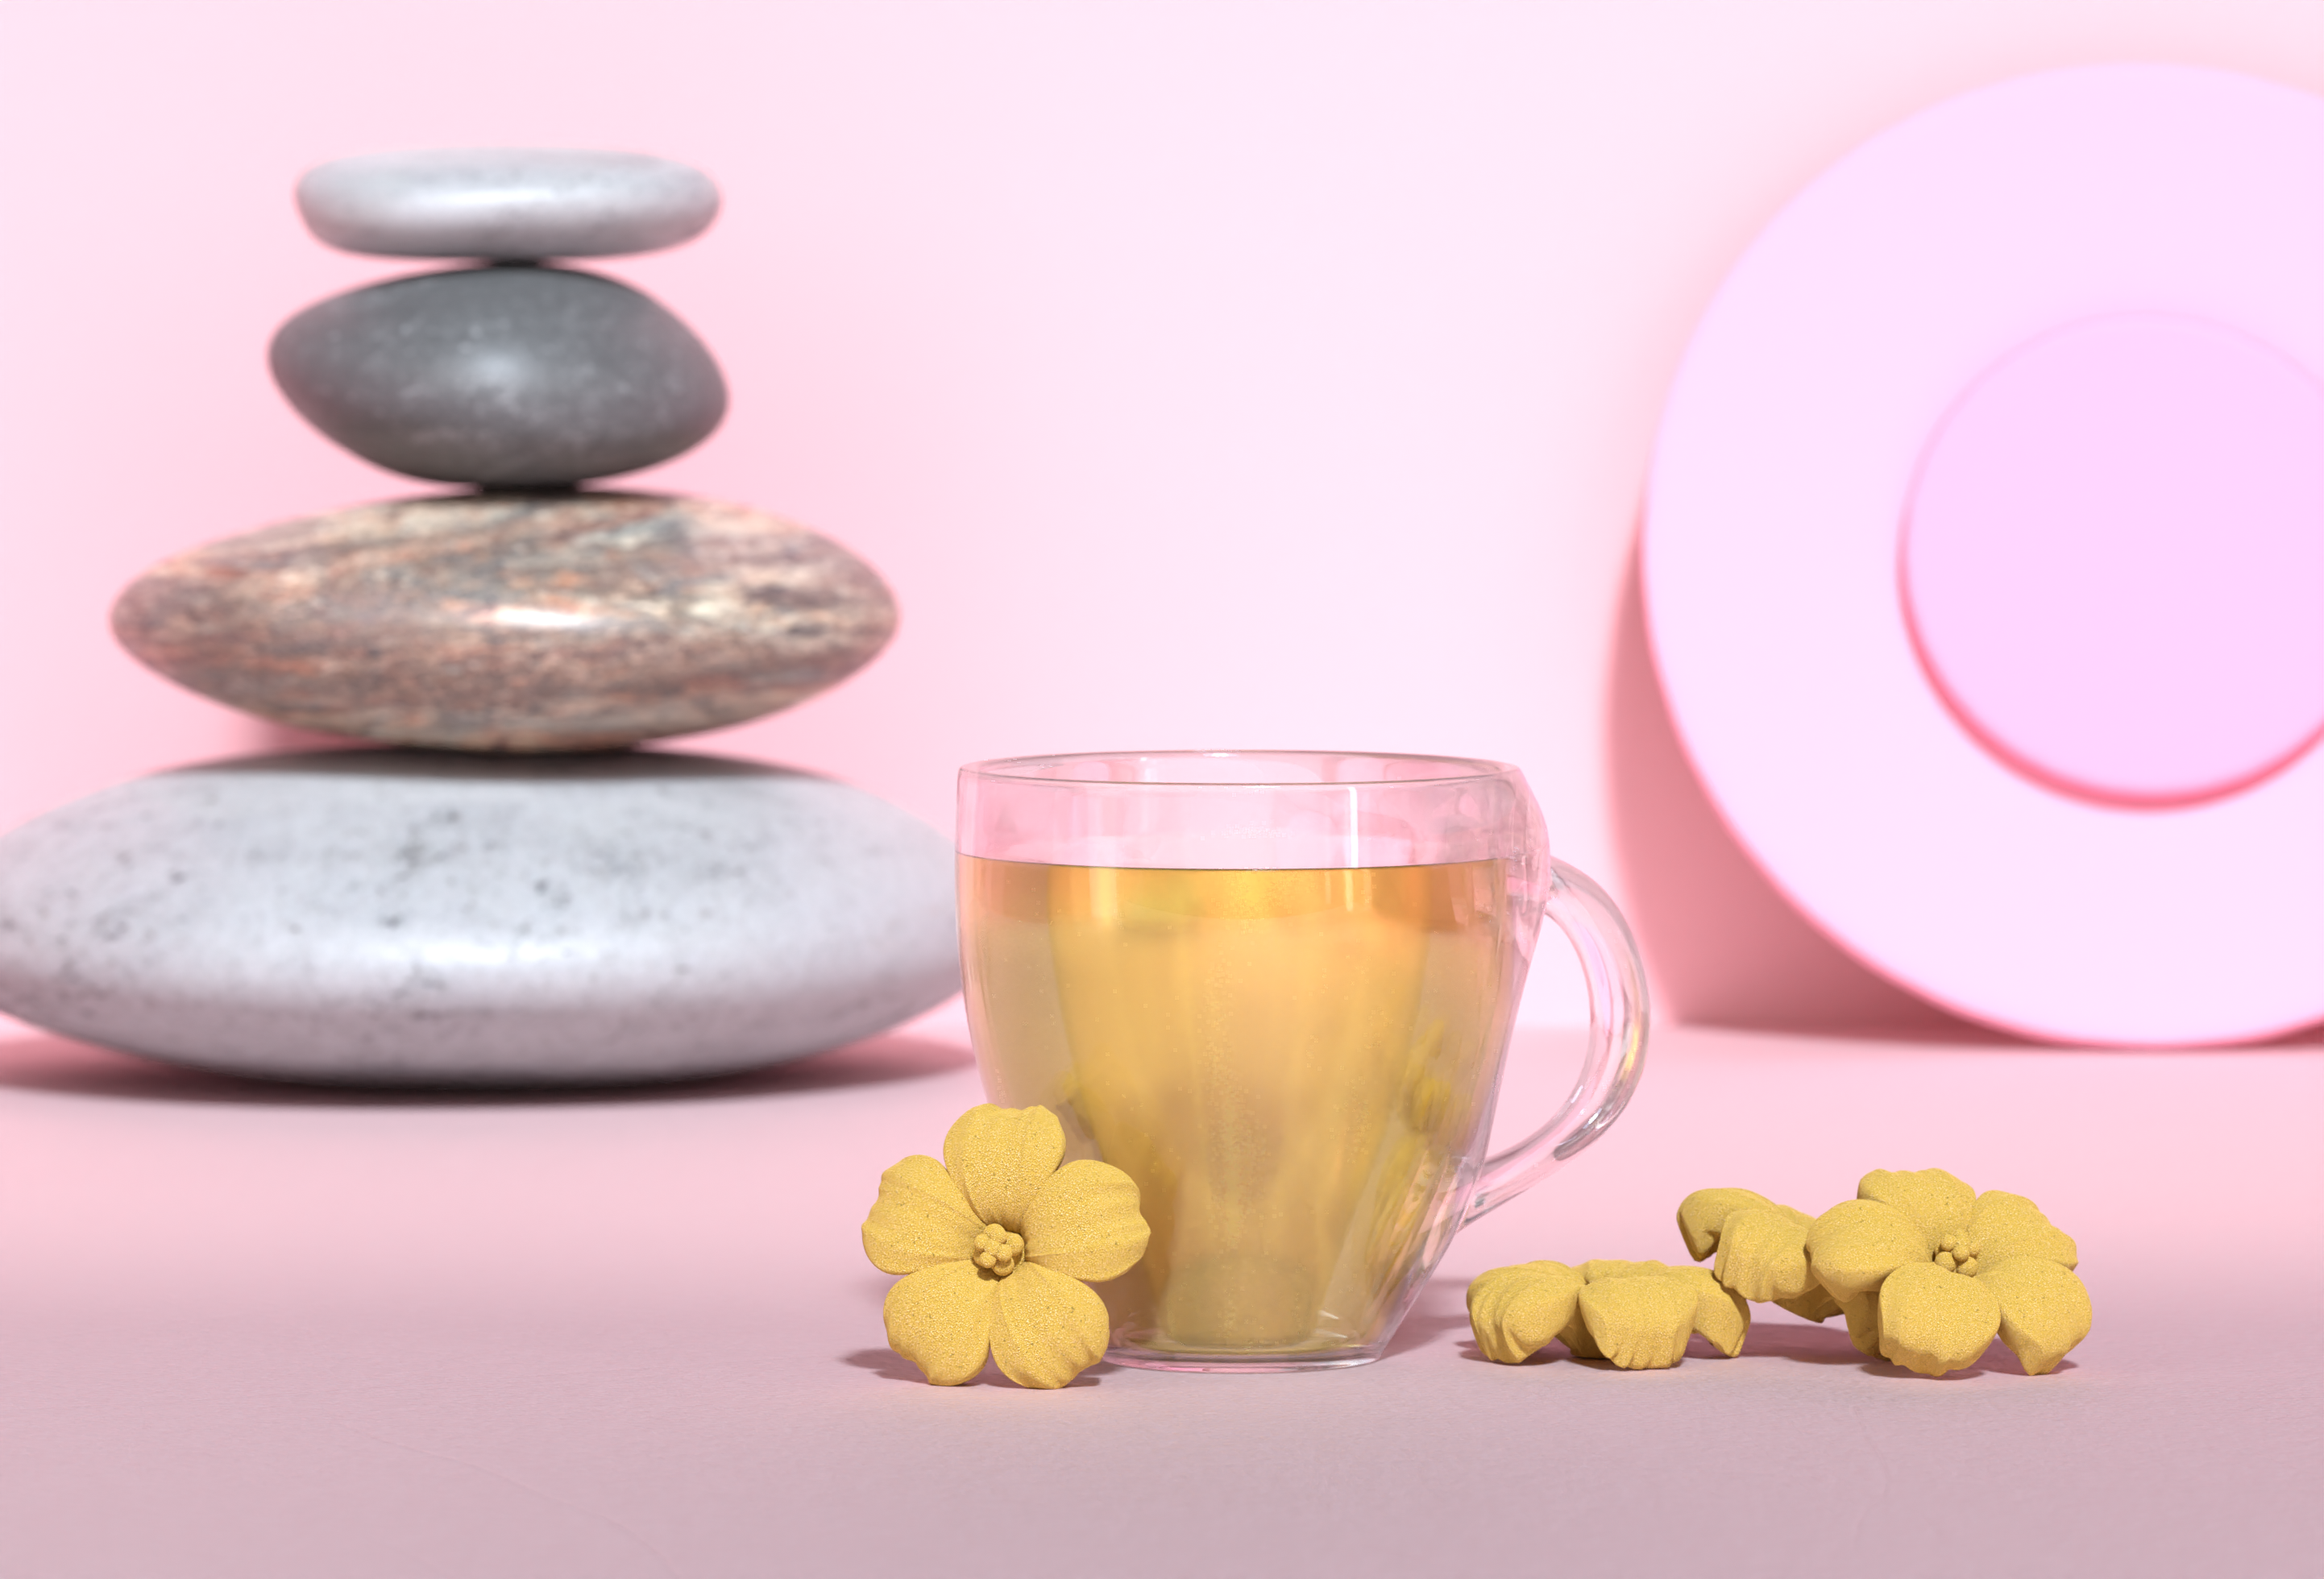 functionals-3ddrink-relax-3dfood-poseidn-glassshot